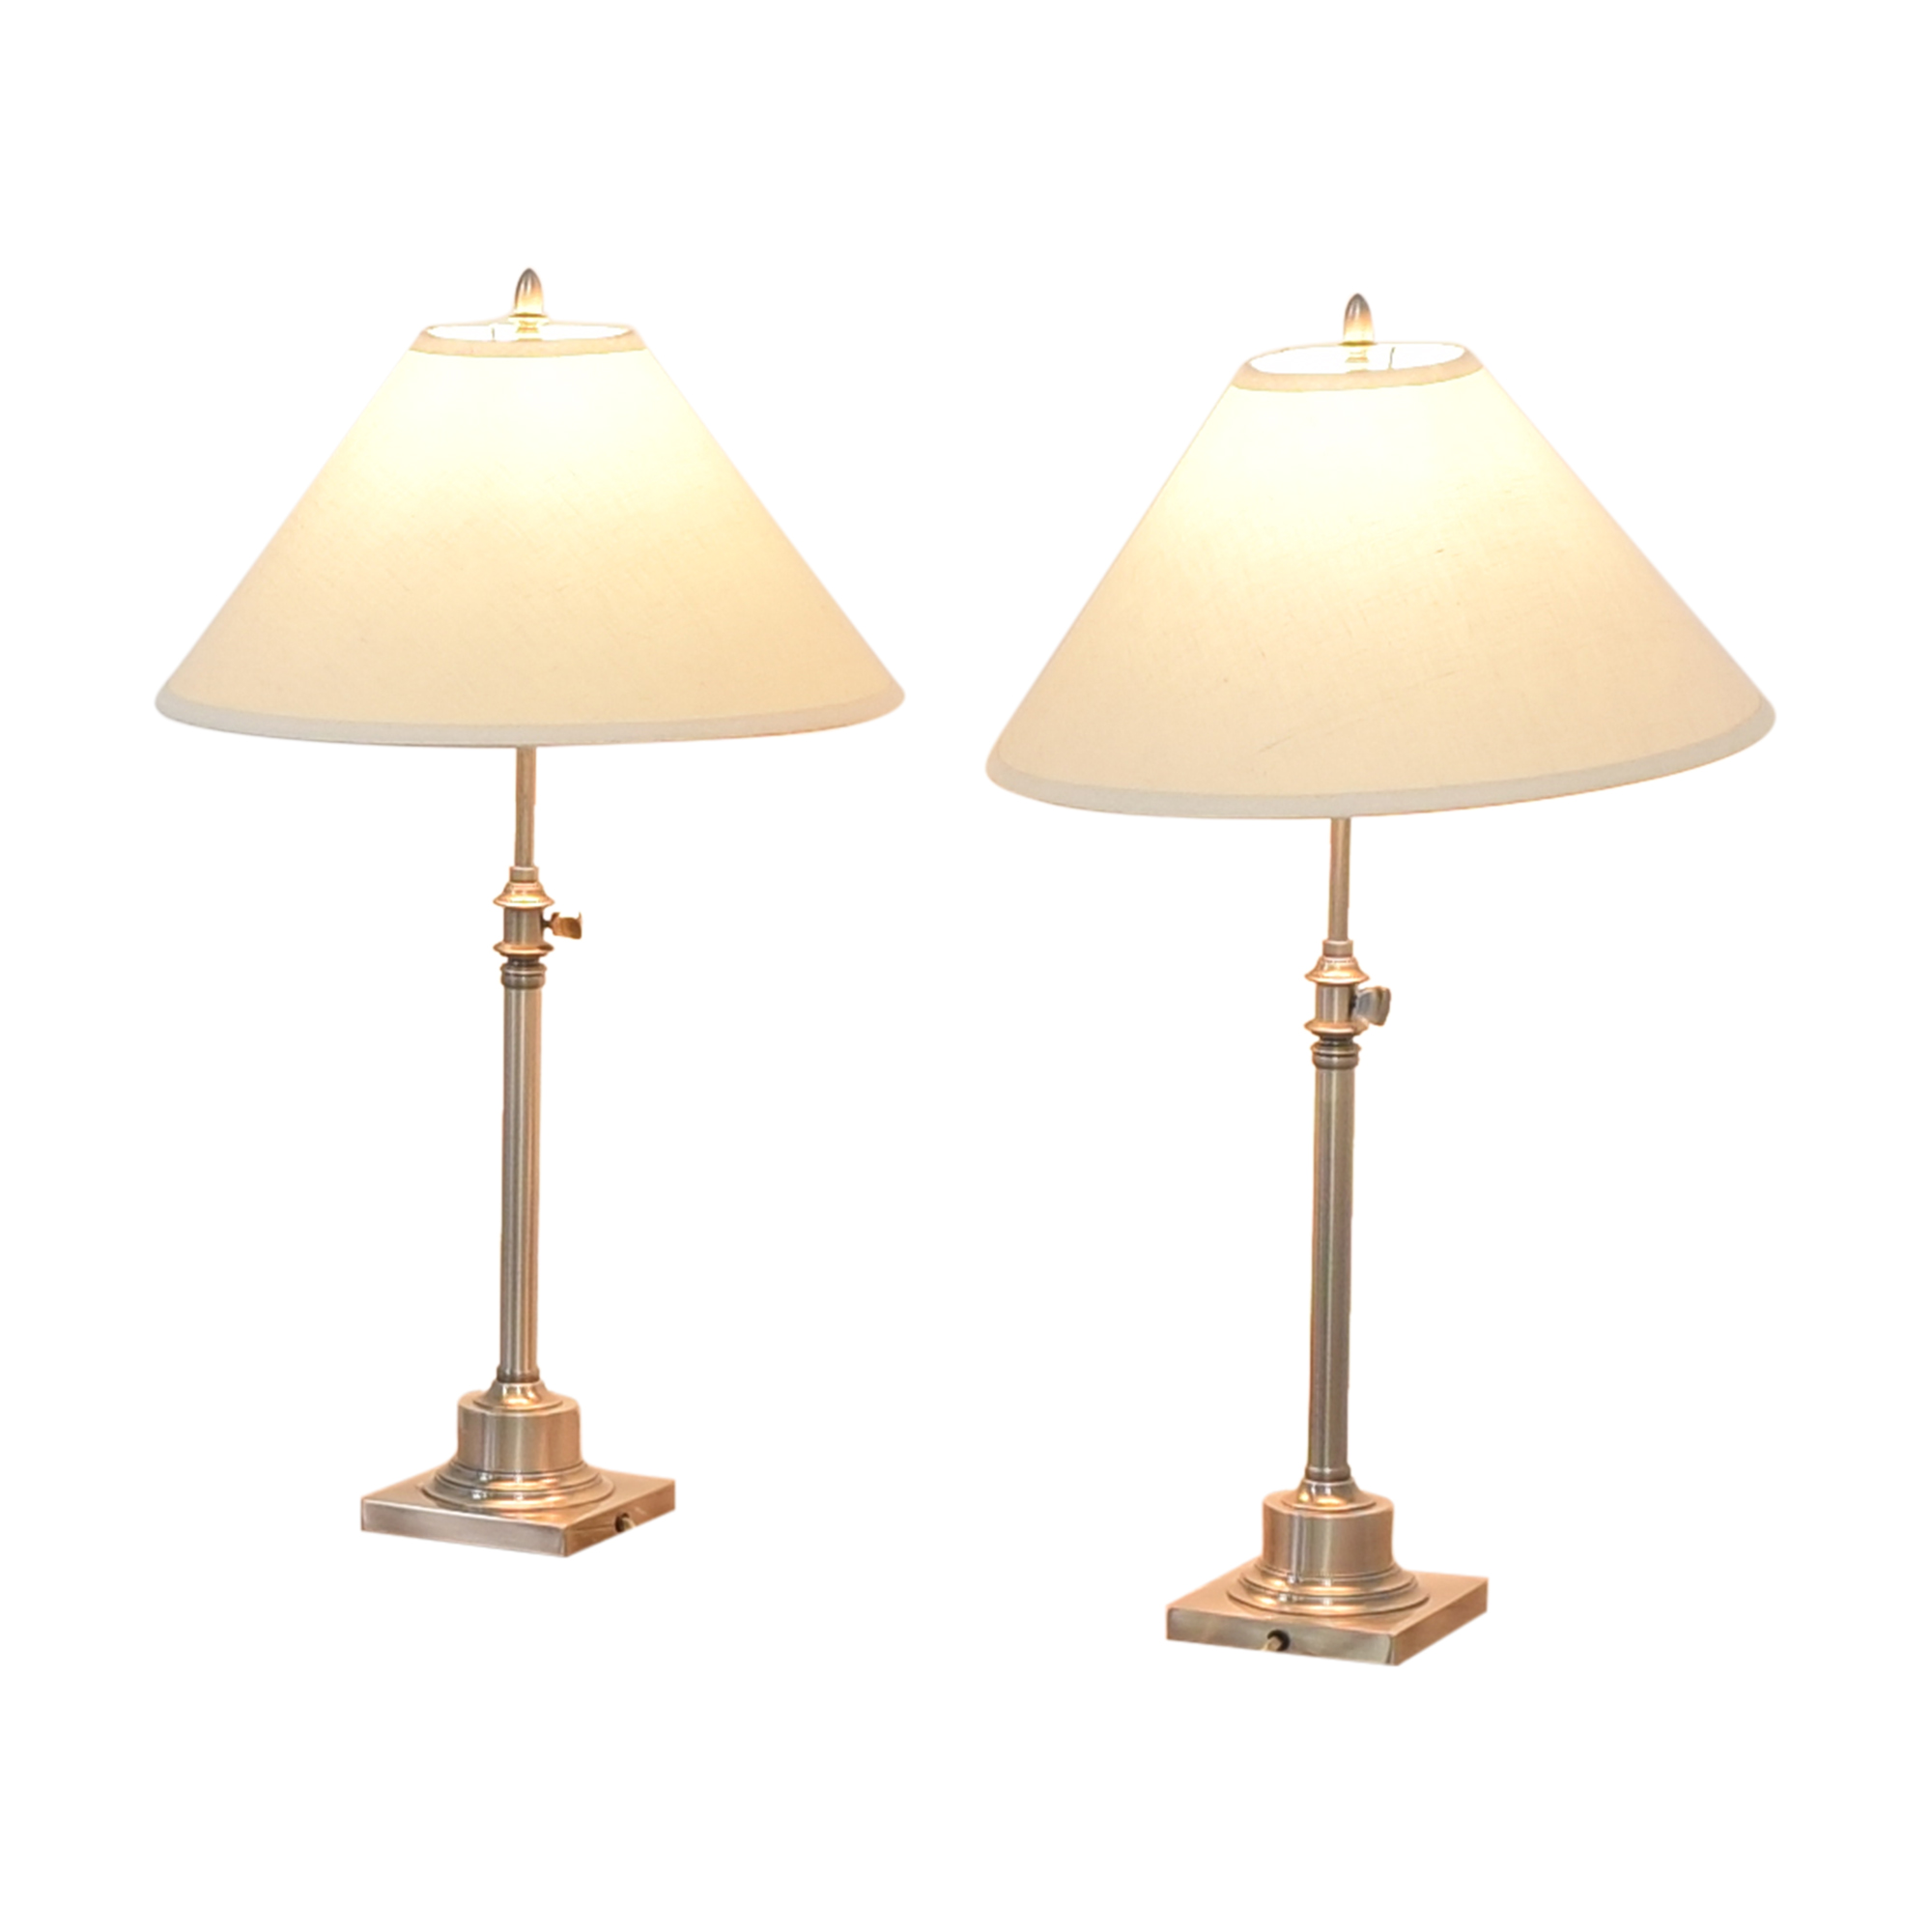 Restoration Hardware Restoration Hardware Adjustable Table Lamps used